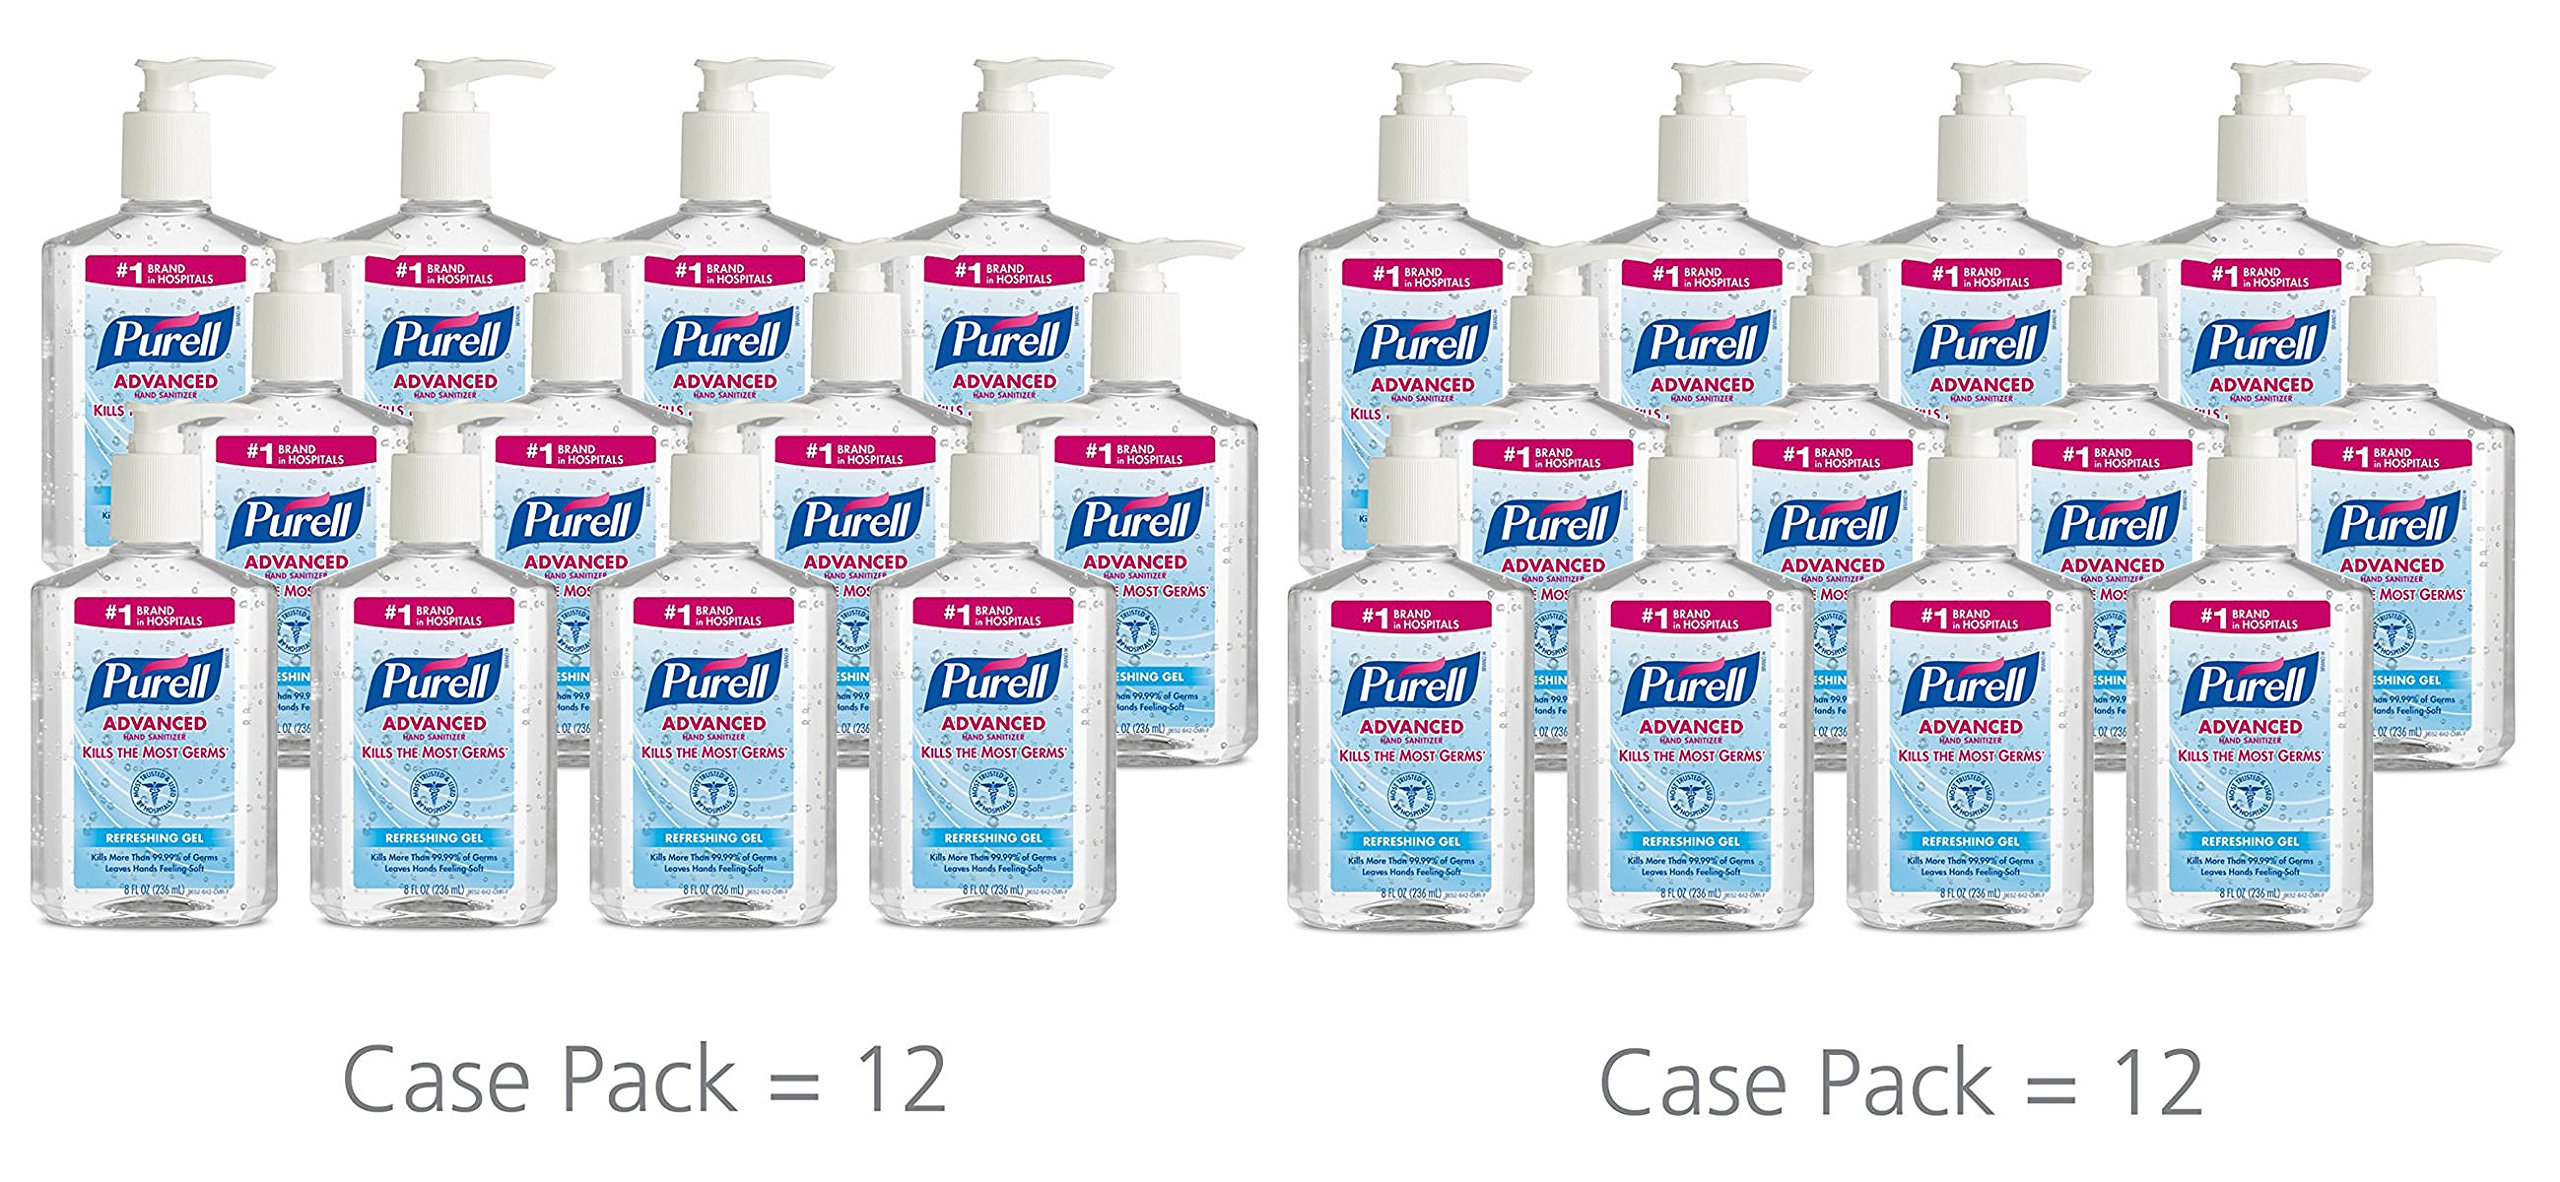 PURELL 9652 Advanced Instant Hand Sanitizer, 8 Ounce Pump Bottle (Pack of 24)